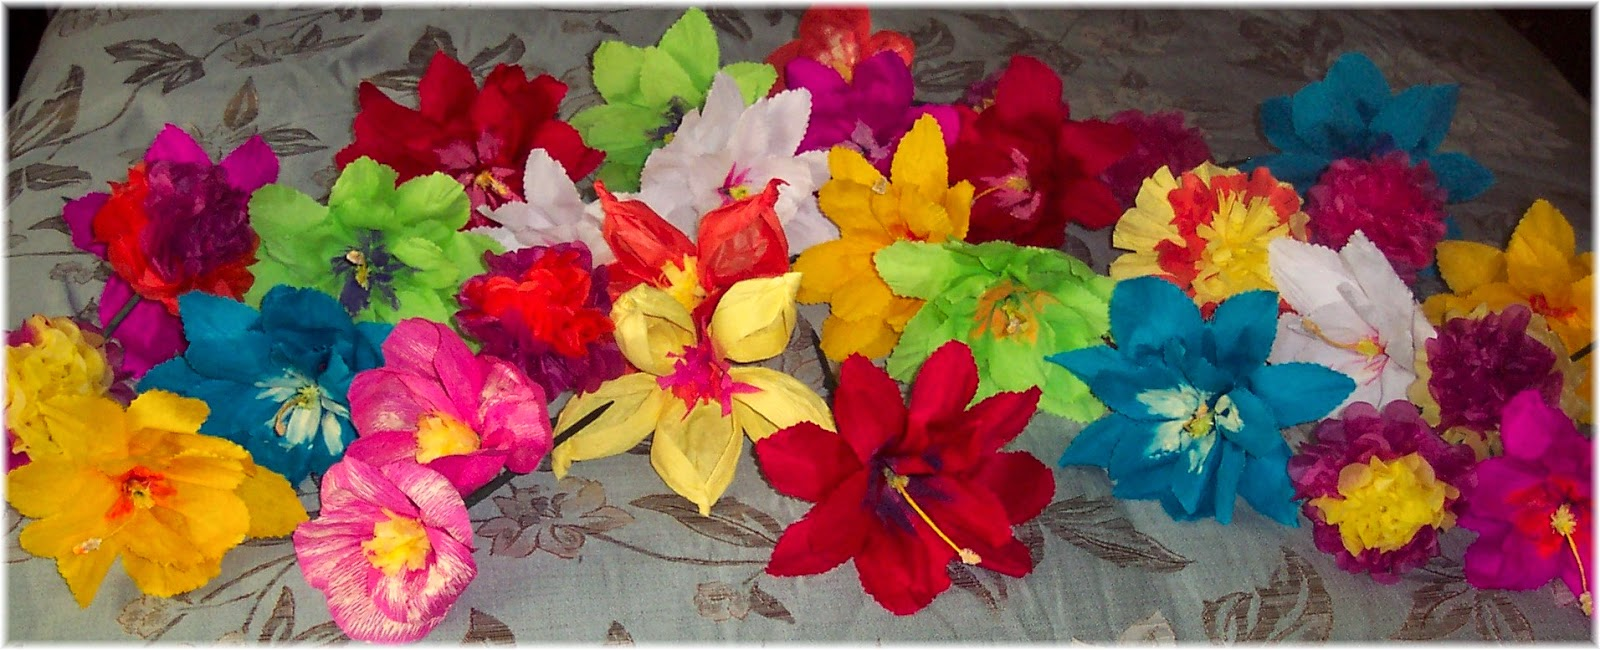 Soapsmiths Blog Luau Party Decorations And Favors